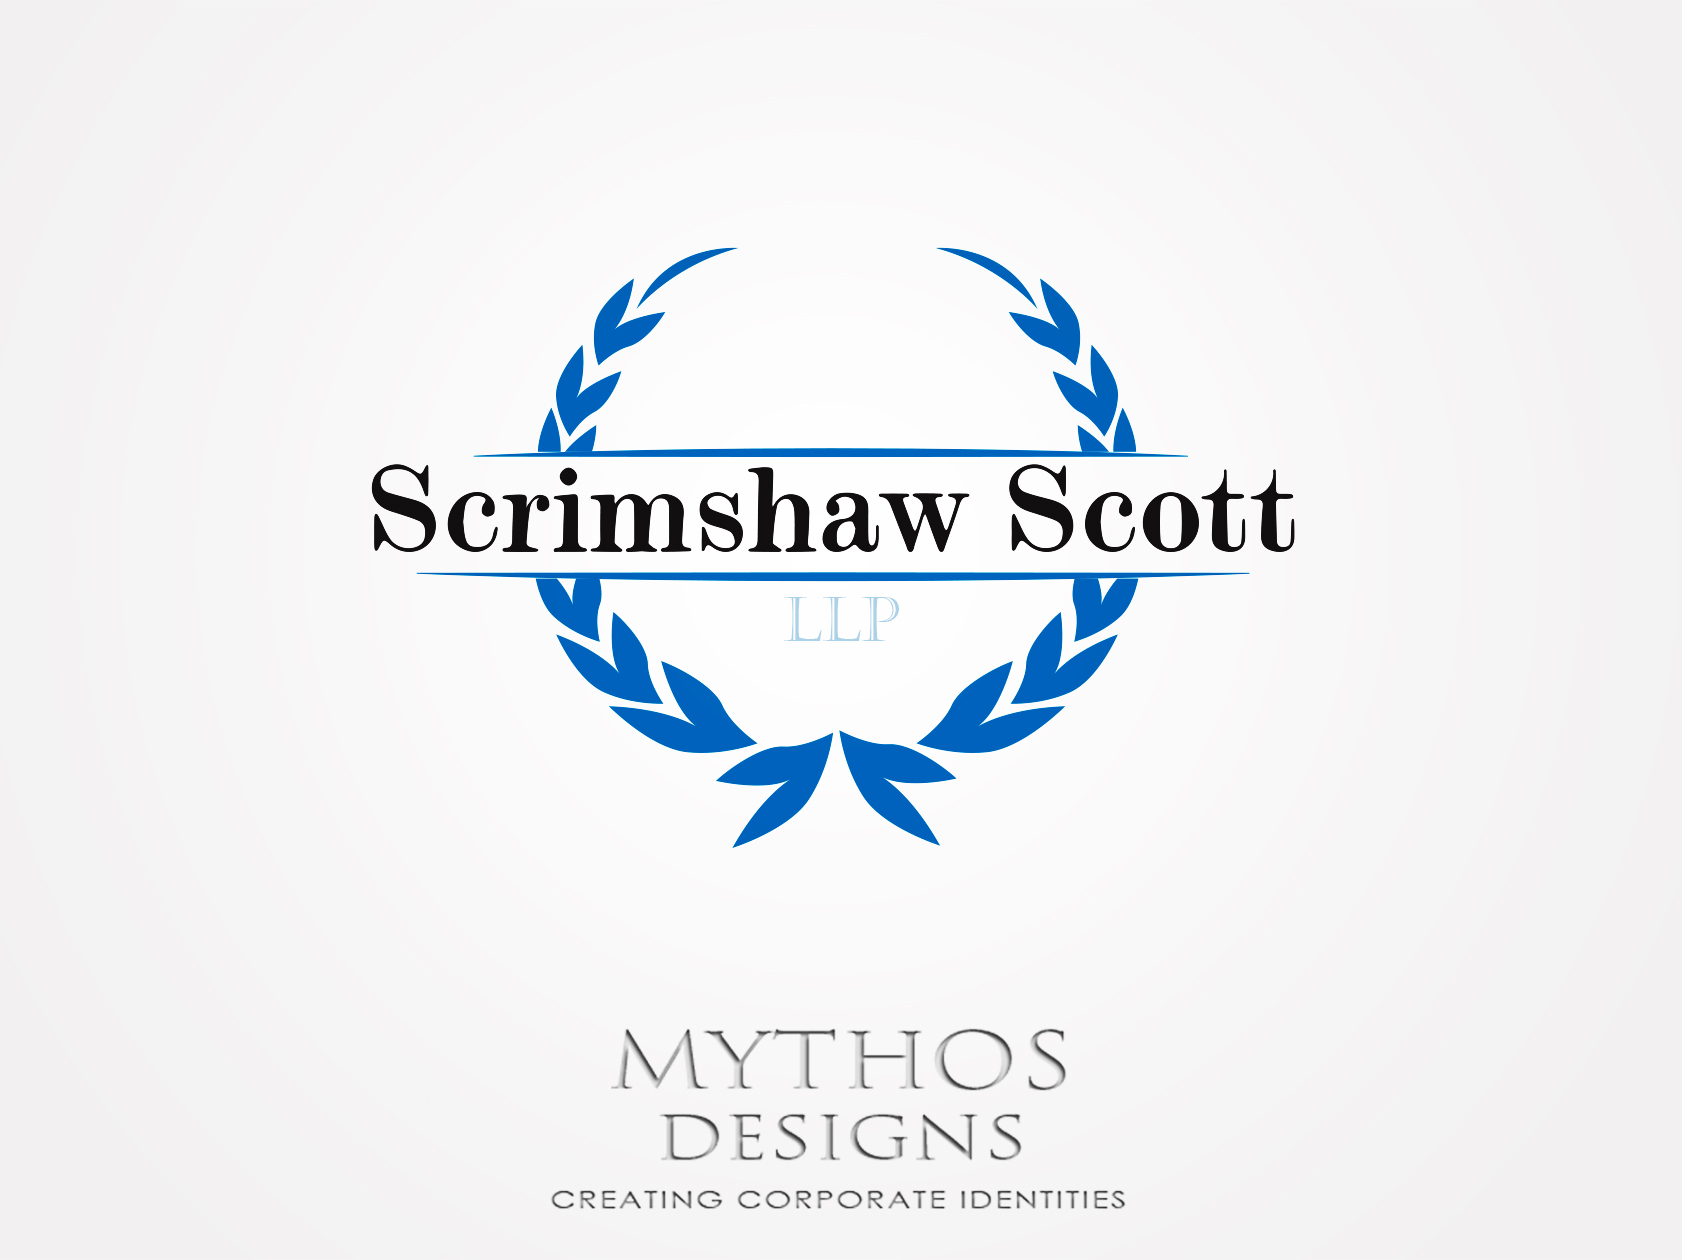 Logo Design by Mythos Designs - Entry No. 44 in the Logo Design Contest Creative Logo Design for Scrimshaw Scott LLP.